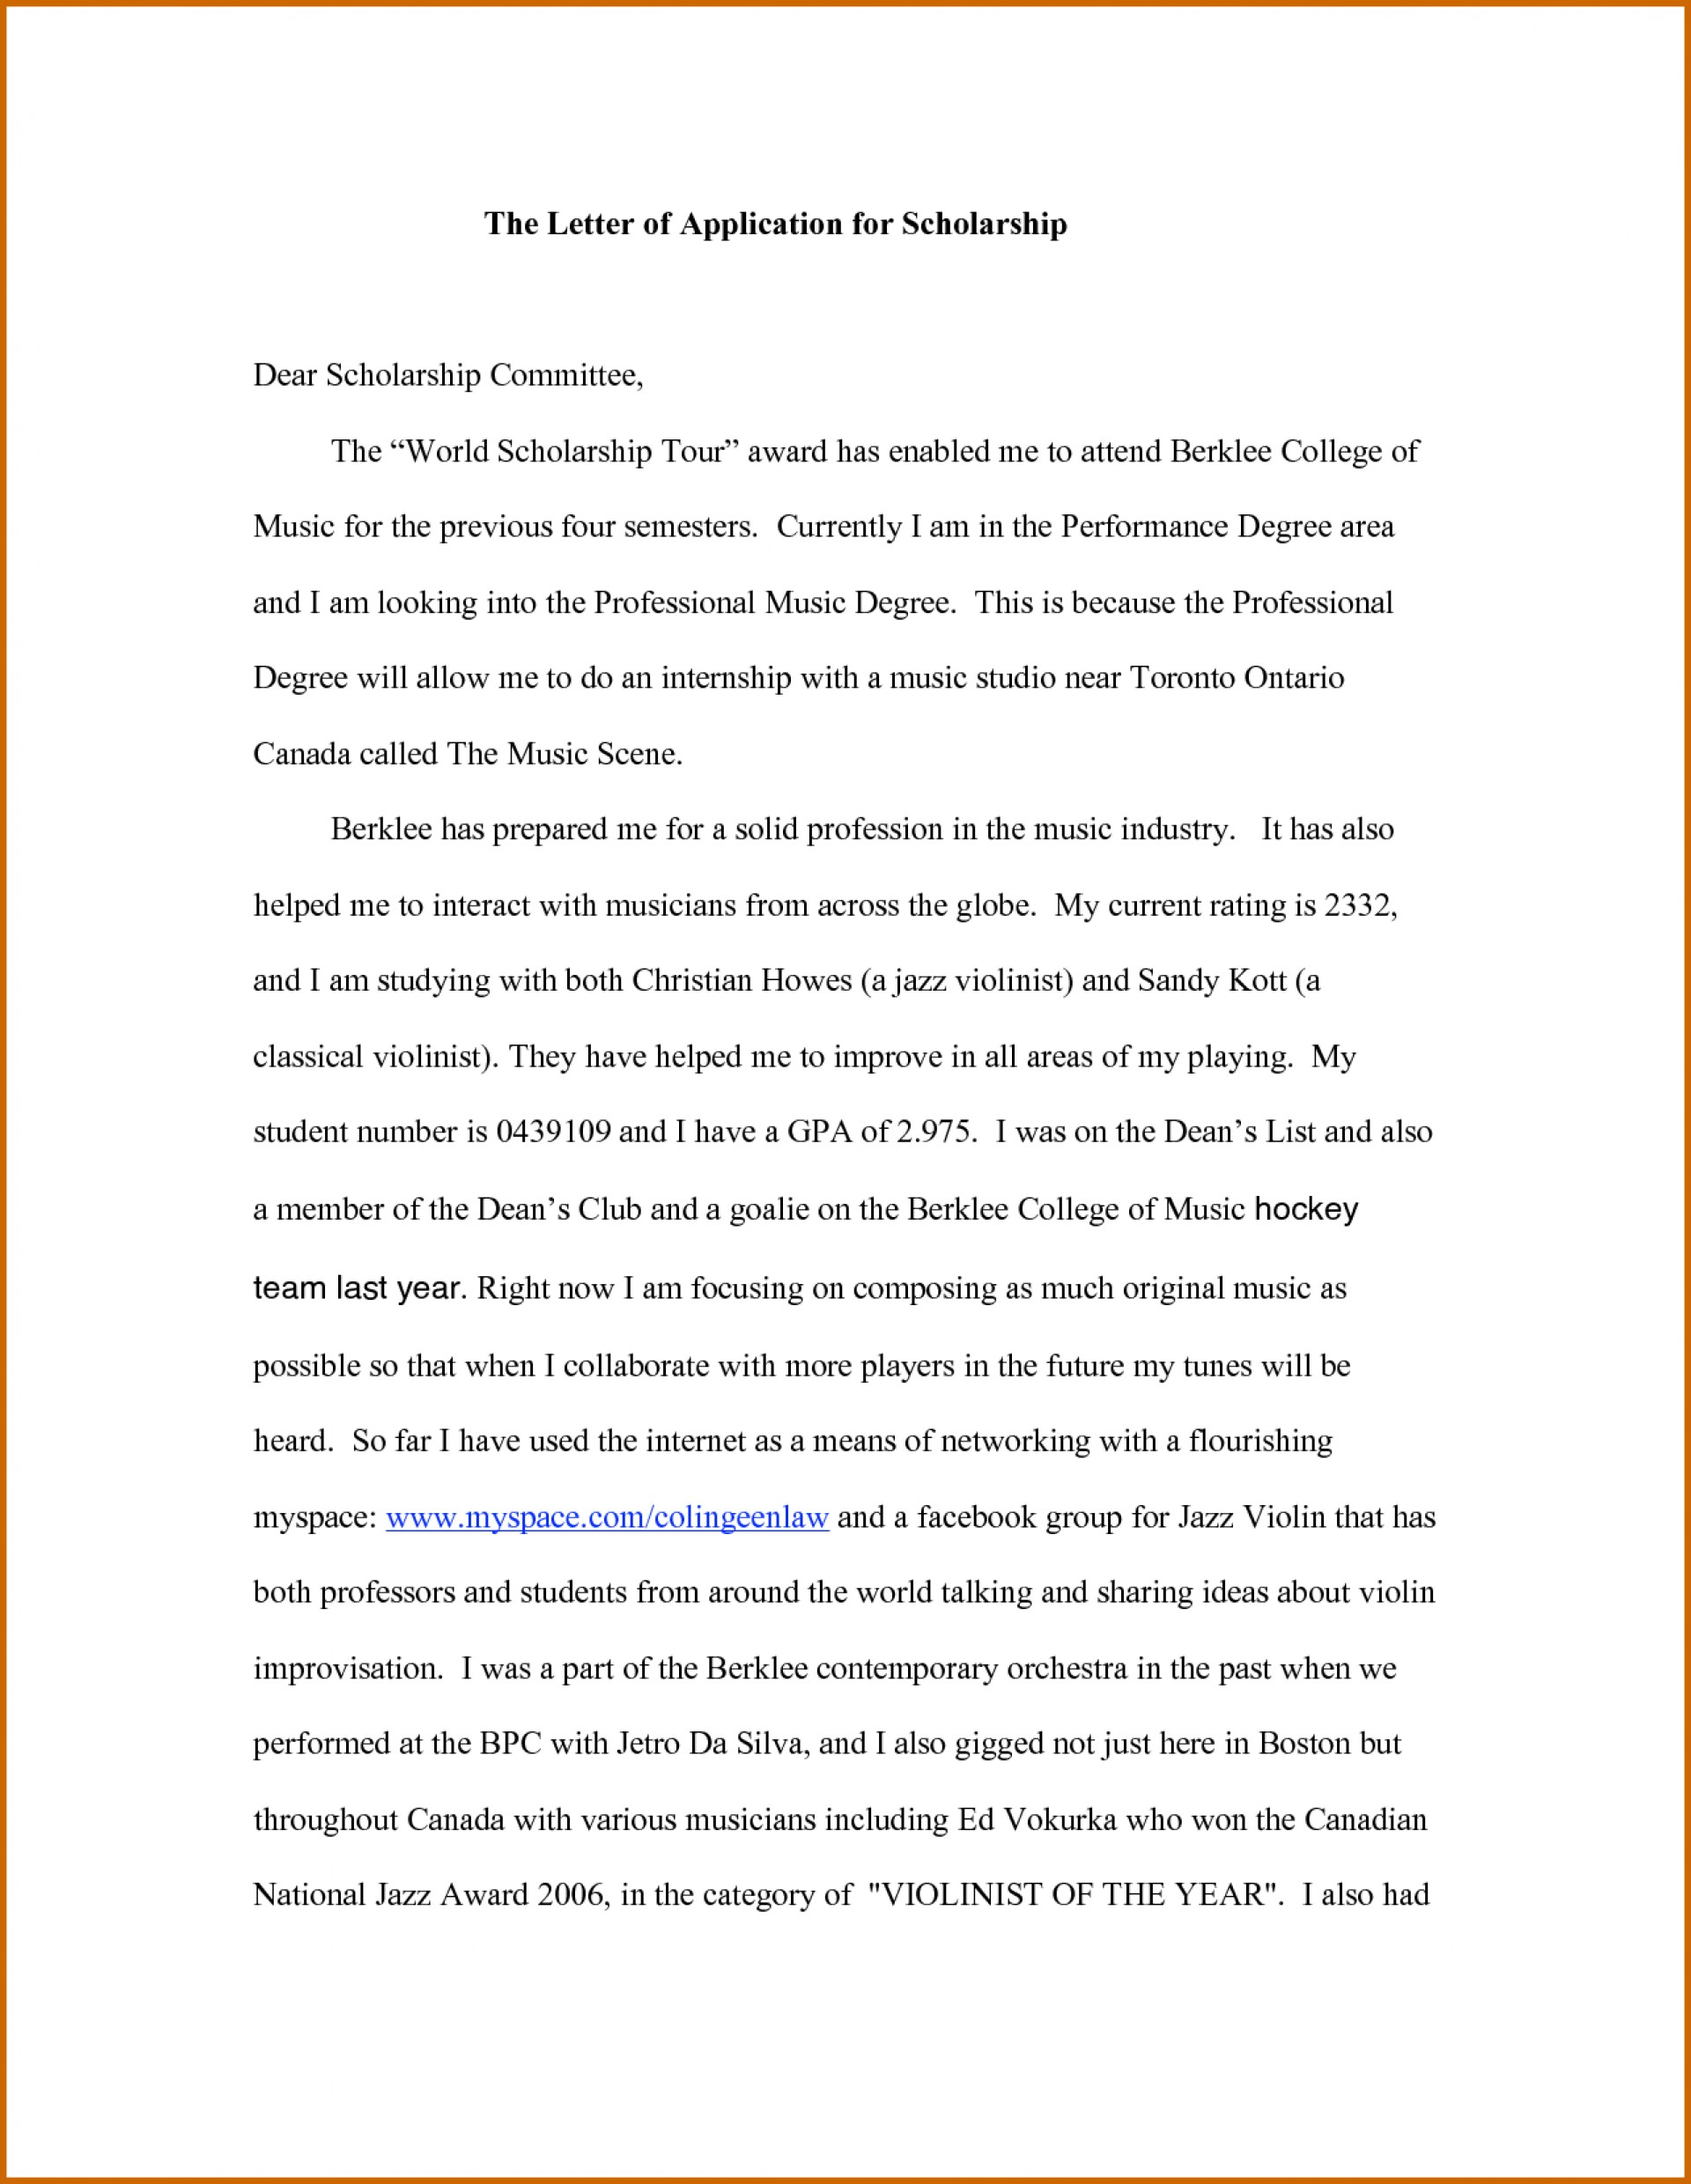 012 How To Format Scholarship Essay Write Application For Letter Wondrous A Template Introduction Outline 1920